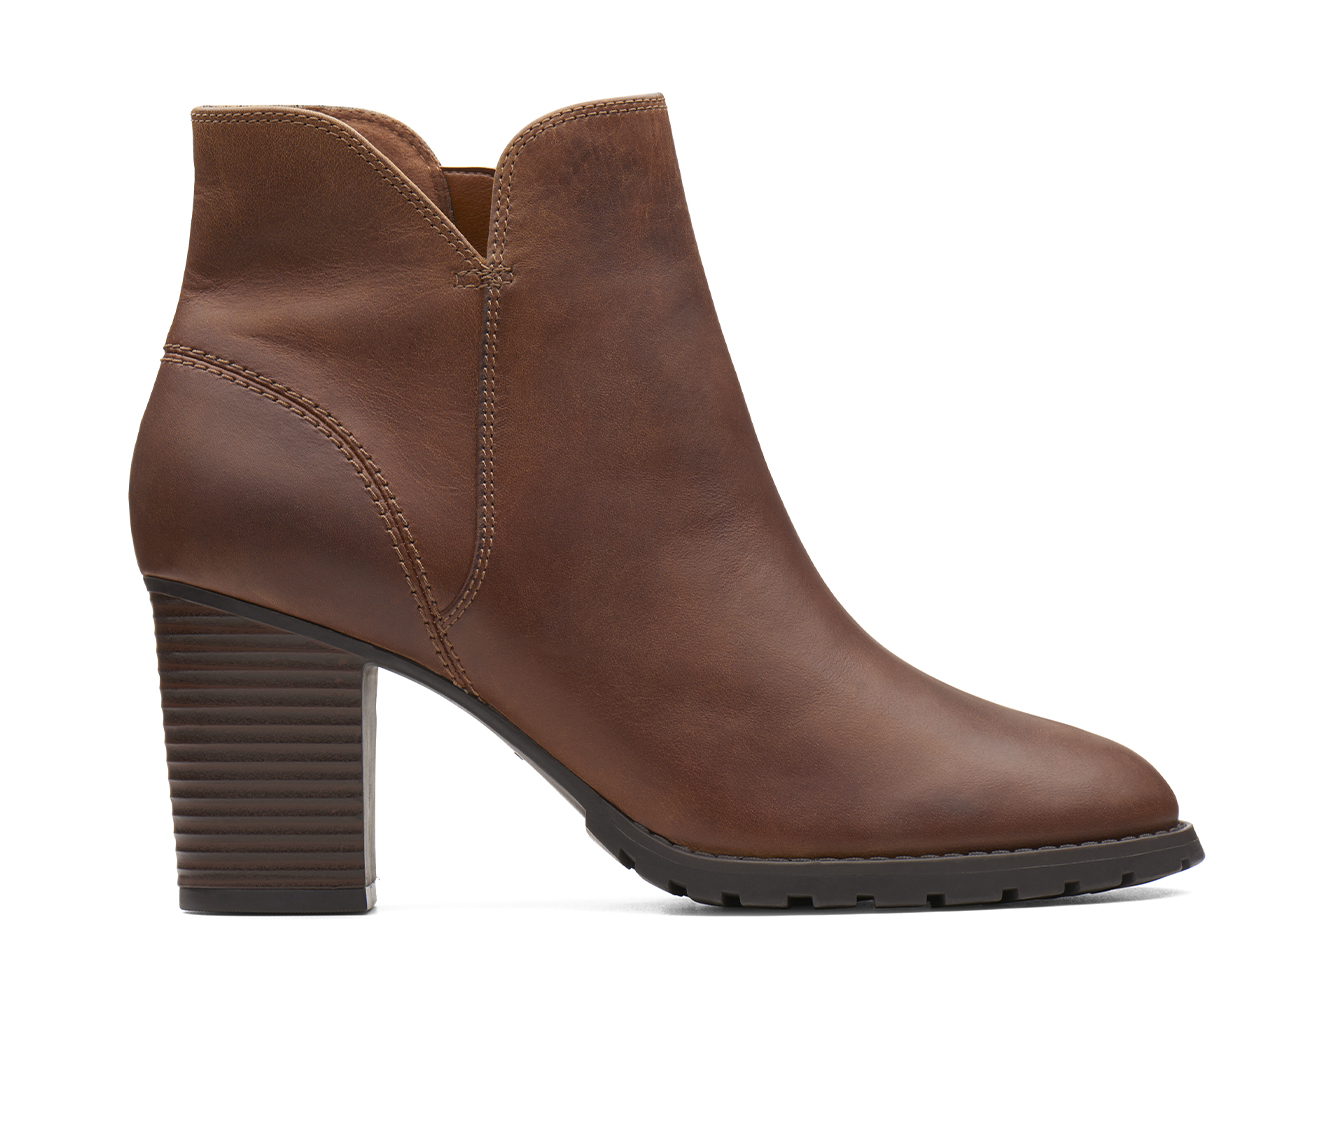 Clarks Verona Trish Women's Boots (Brown - Leather)